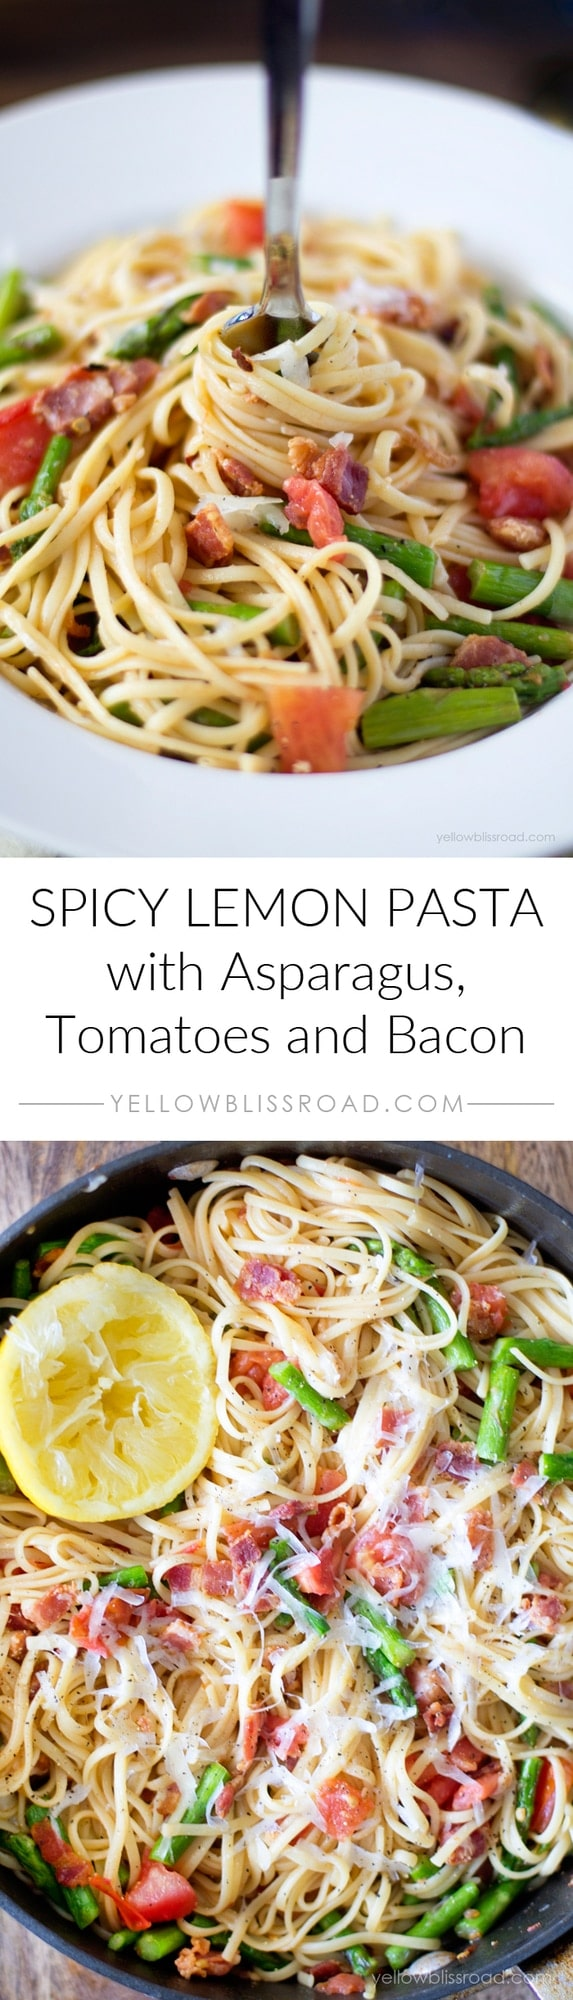 Spicy Lemon Pasta with Bacon, Asparagus and Tomatoes